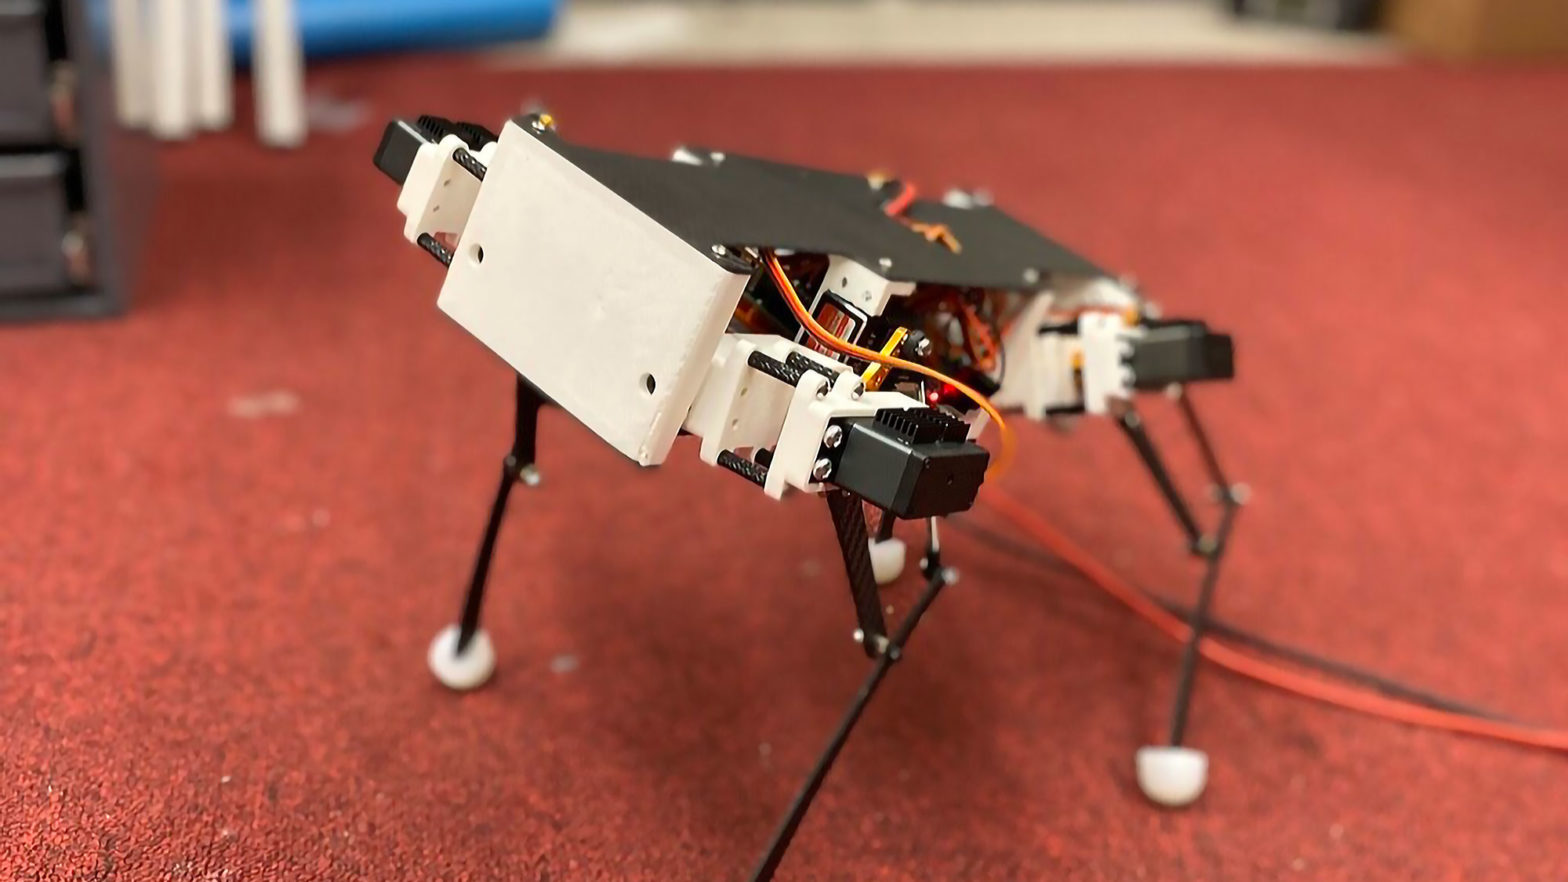 Stanford Pupper Quadruped Robot